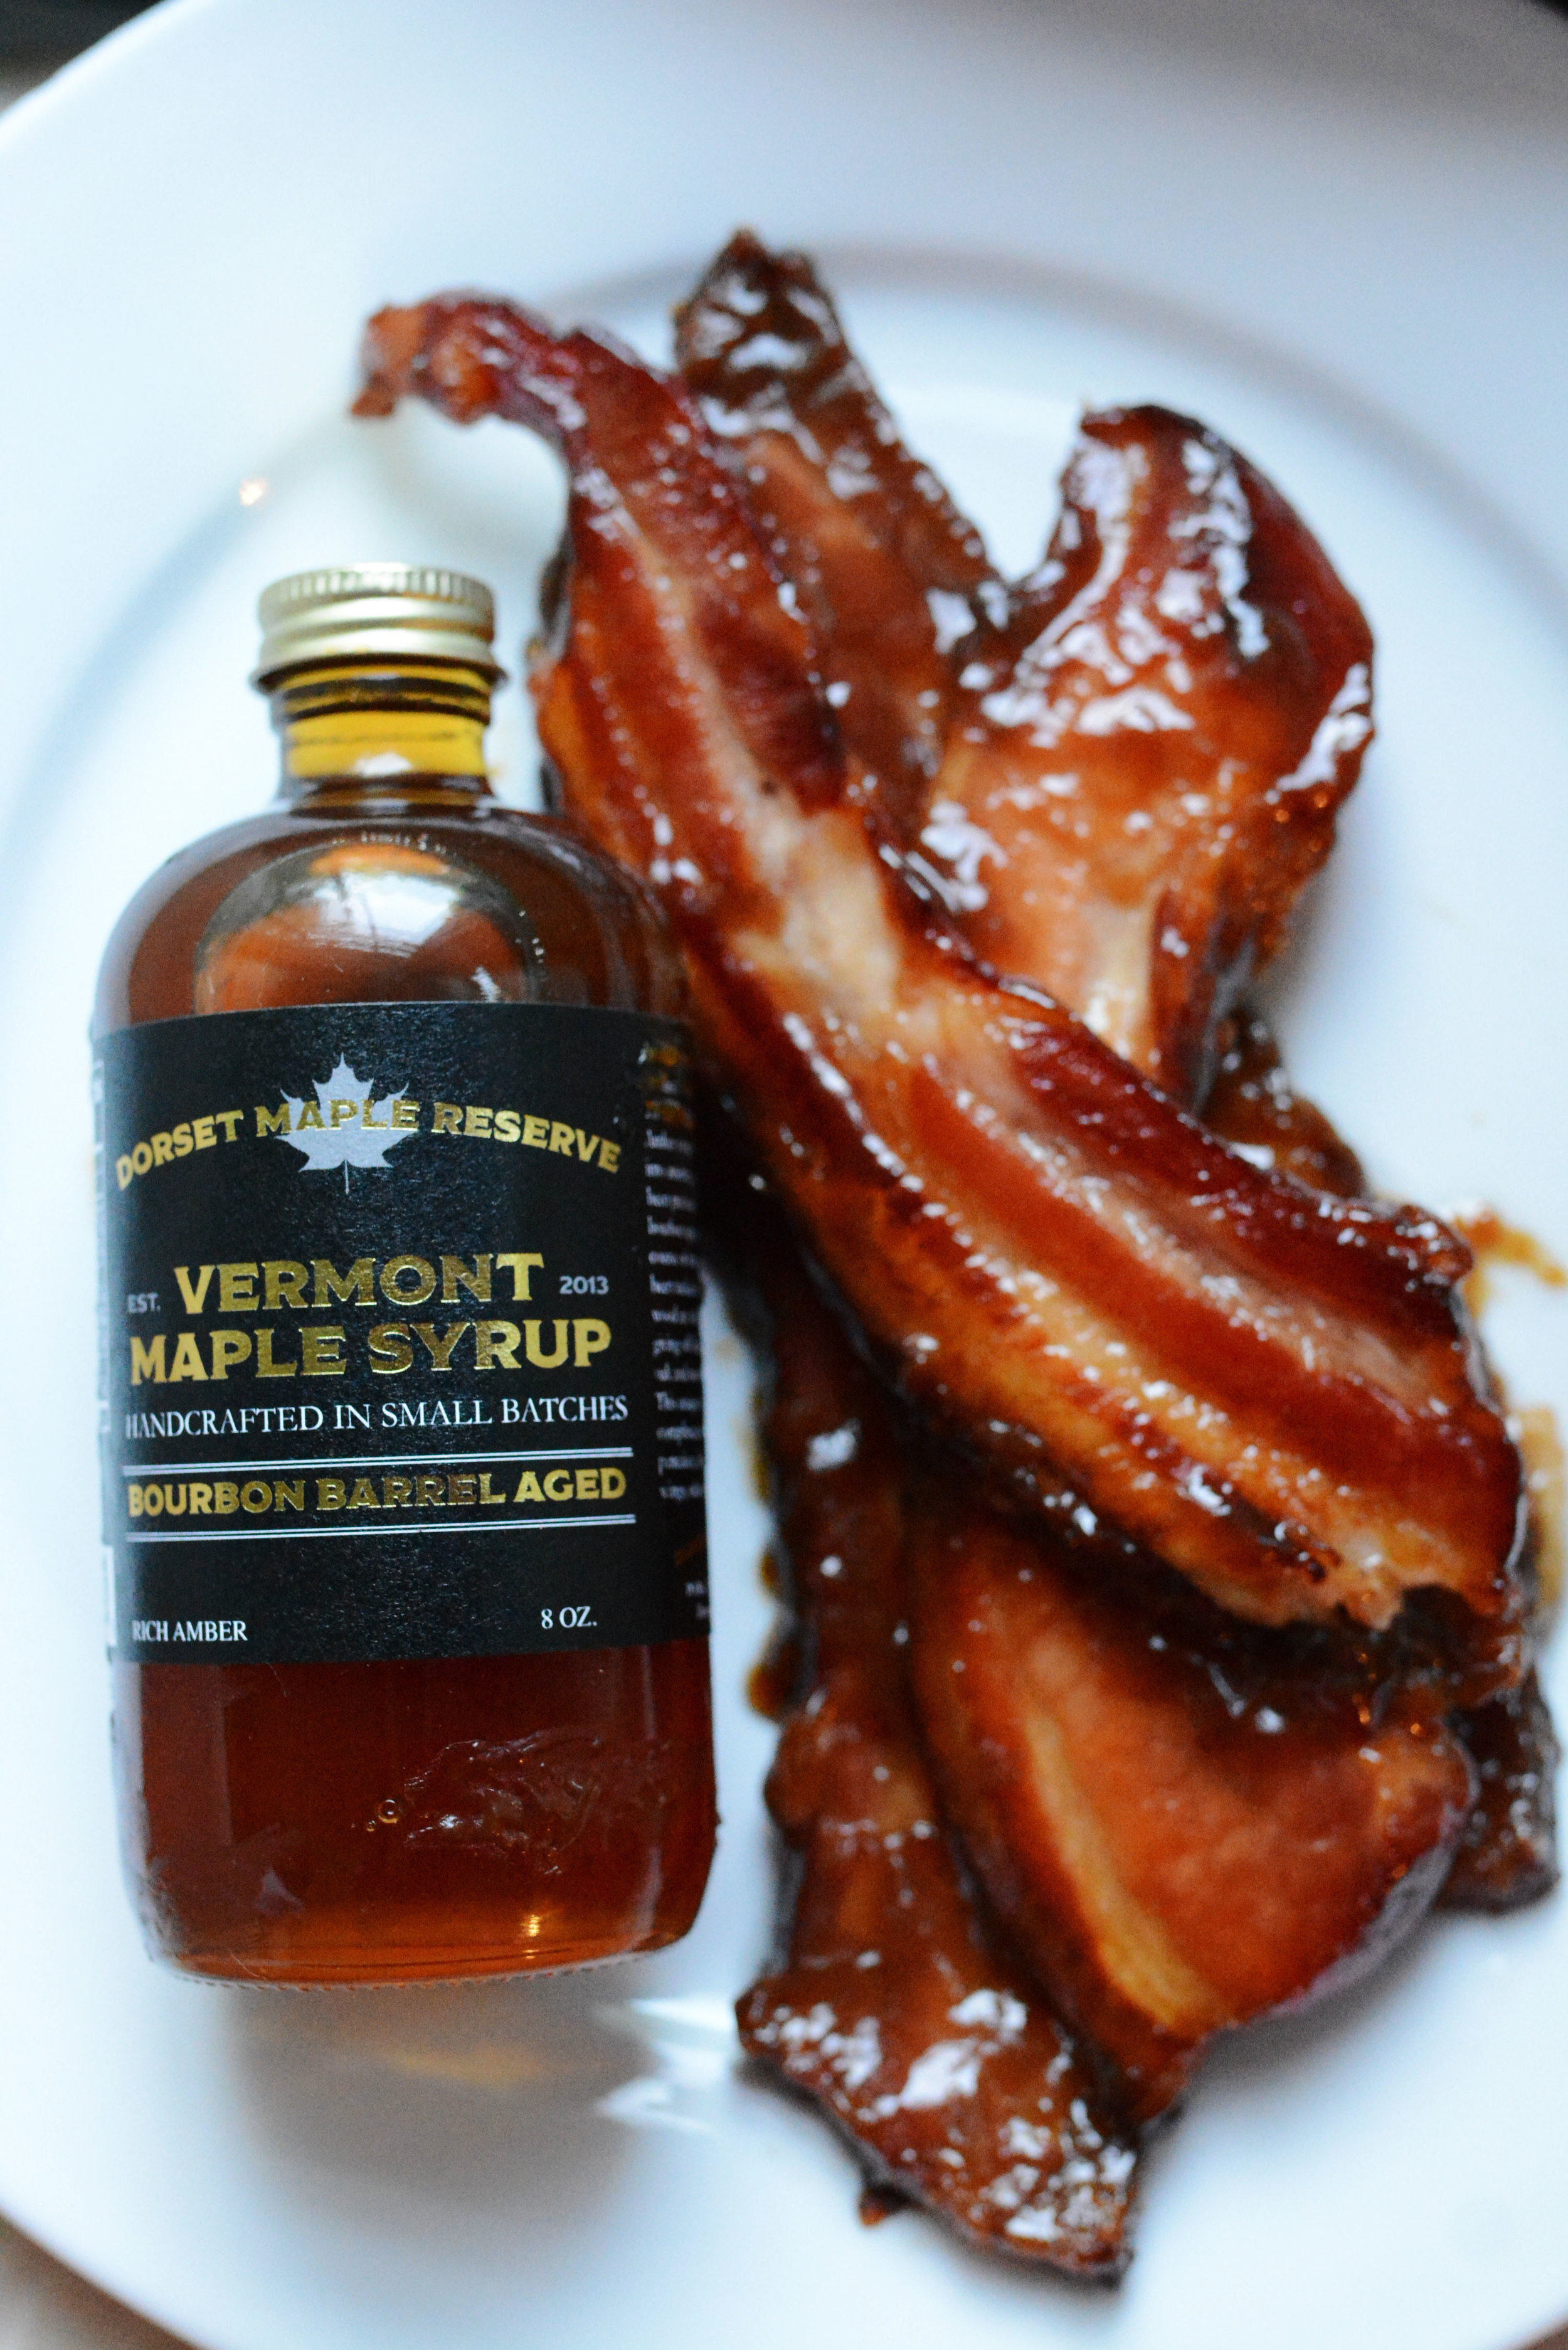 Maple Candied Bacon - 1 lb good quality bacon2 tbsp rich amber maple syrup1/4 cup brown sugar2 tsp dijon mustard1/2 tsp kosher salt1/4 tsp cayenne pepperPreheat oven to 350 degrees.Wrap baking sheet with tin foil and top with wire rack.In a bowl add all ingredients and mix well, add bacon and coat evenly with mixture.Place bacon in a single layer onto wire rack. Bake for 30-35 minutes.Remove from oven and let cool for 5 minutes (don't let them sit for too long or they will stick.